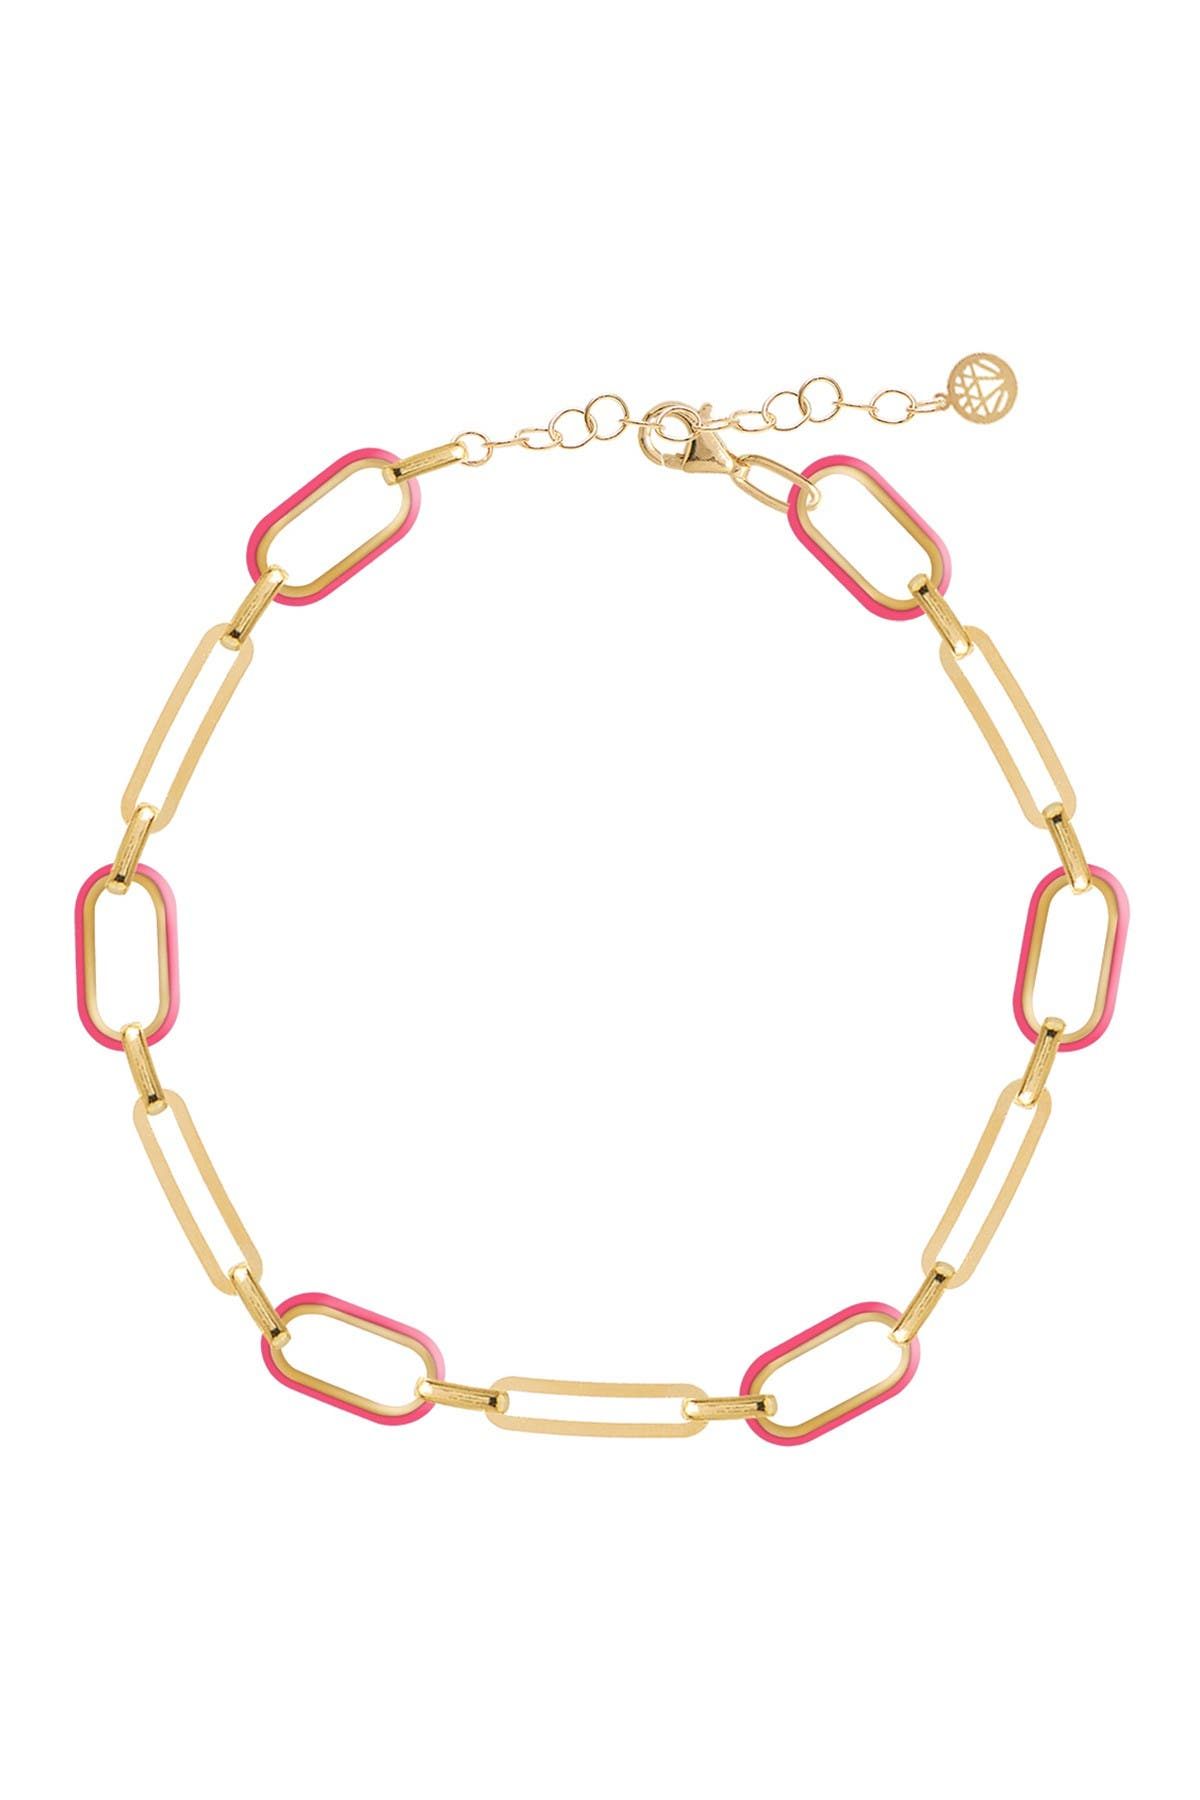 Image of Gabi Rielle 14K Gold Plated Soft Serve Neon Pink Box Chain Anklet